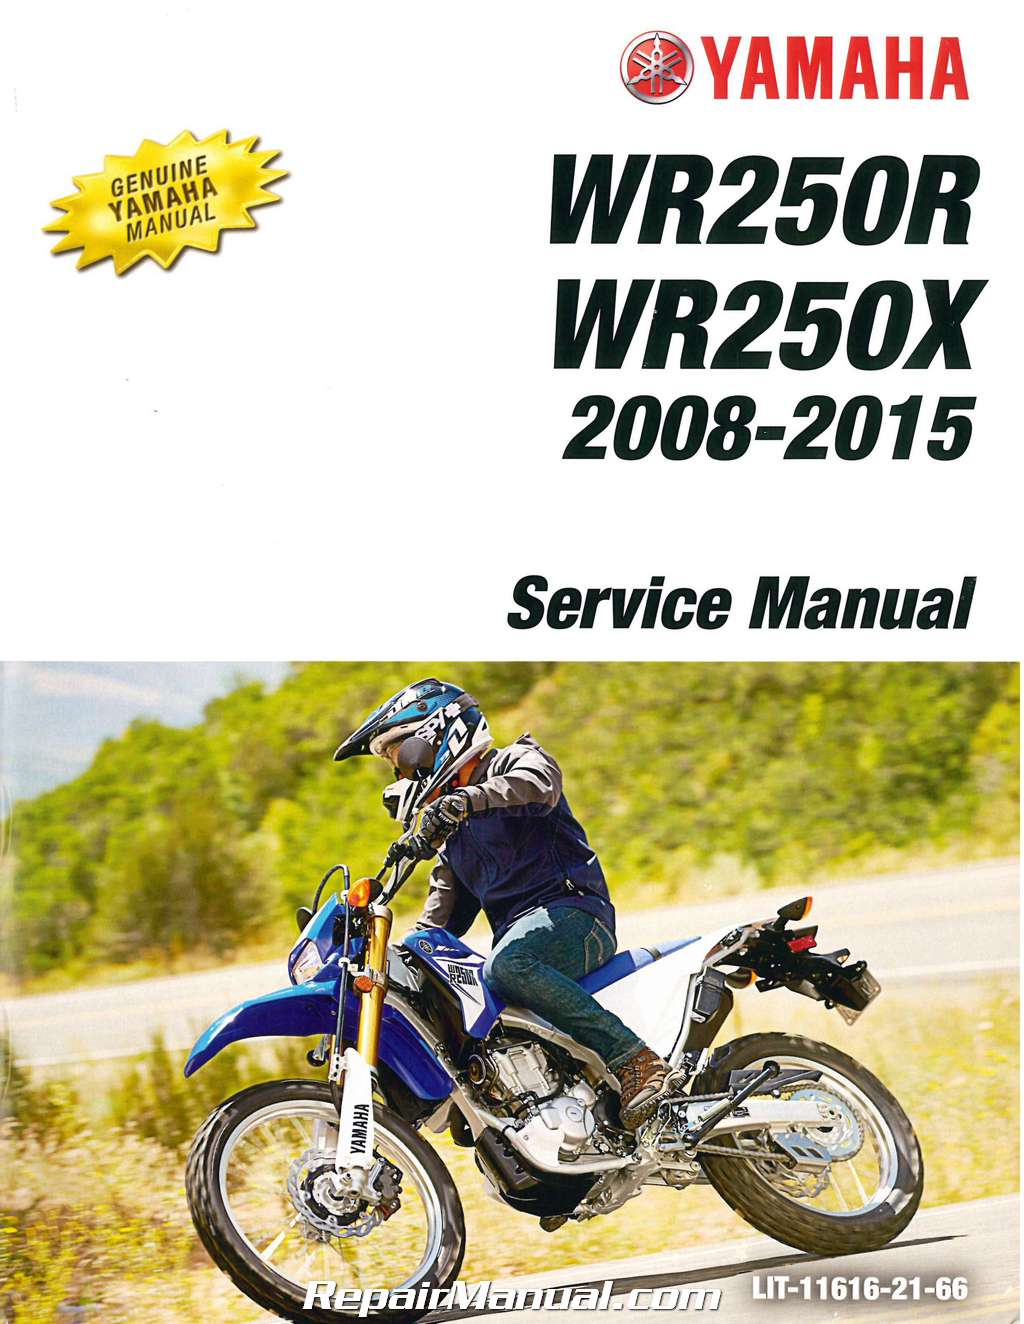 2008 2015 Yamaha Wr250r Wr250x Motorcycle Service Manual